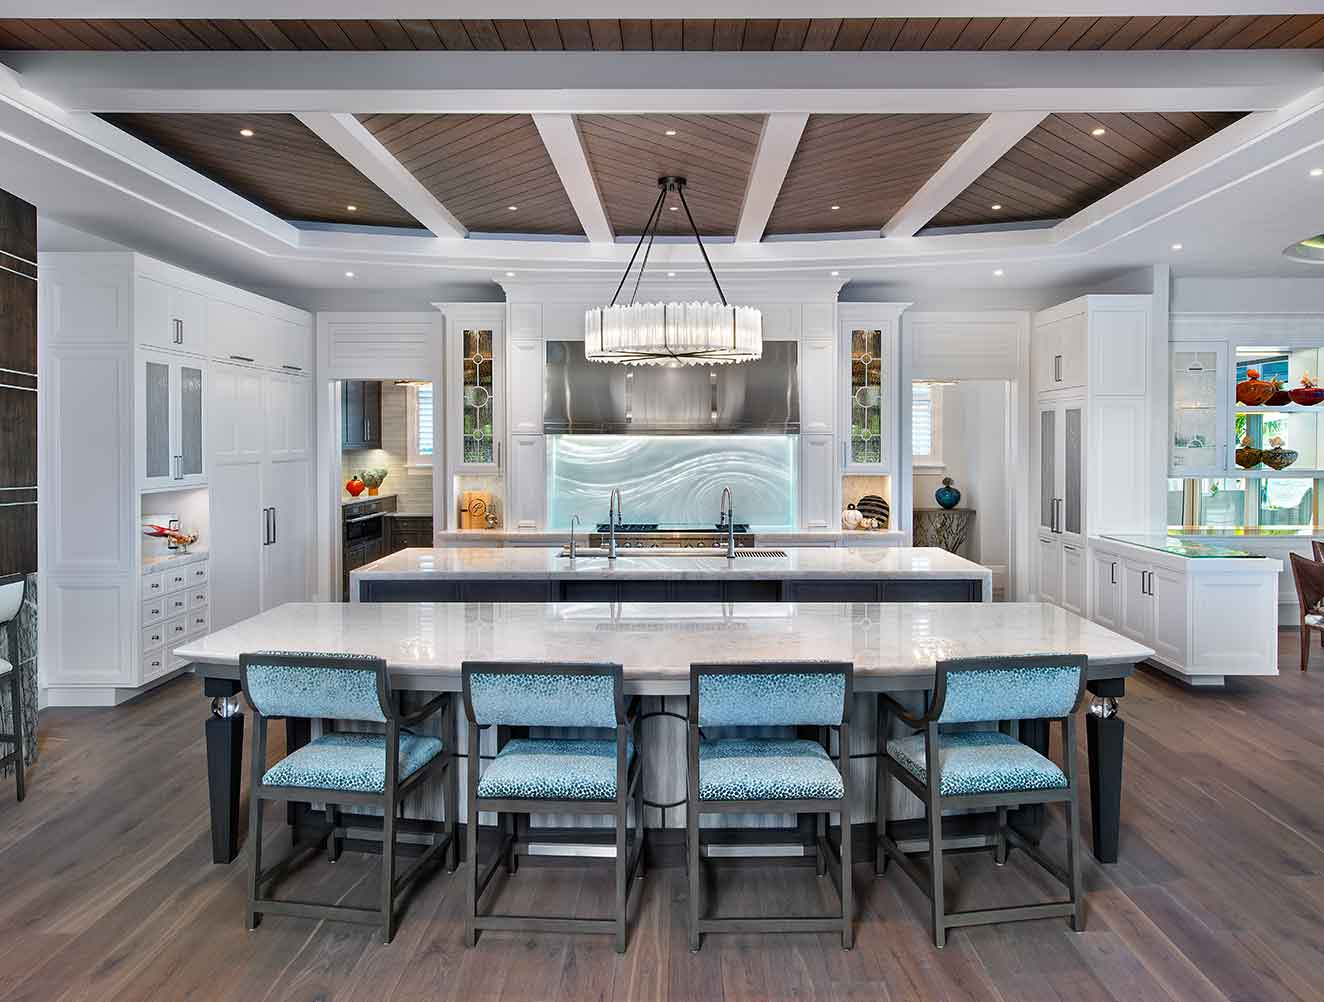 Kitchen of Galleon Estate in Naples Florida, single family home designed by Kukk Architecture & Design Naples Architecture Firm